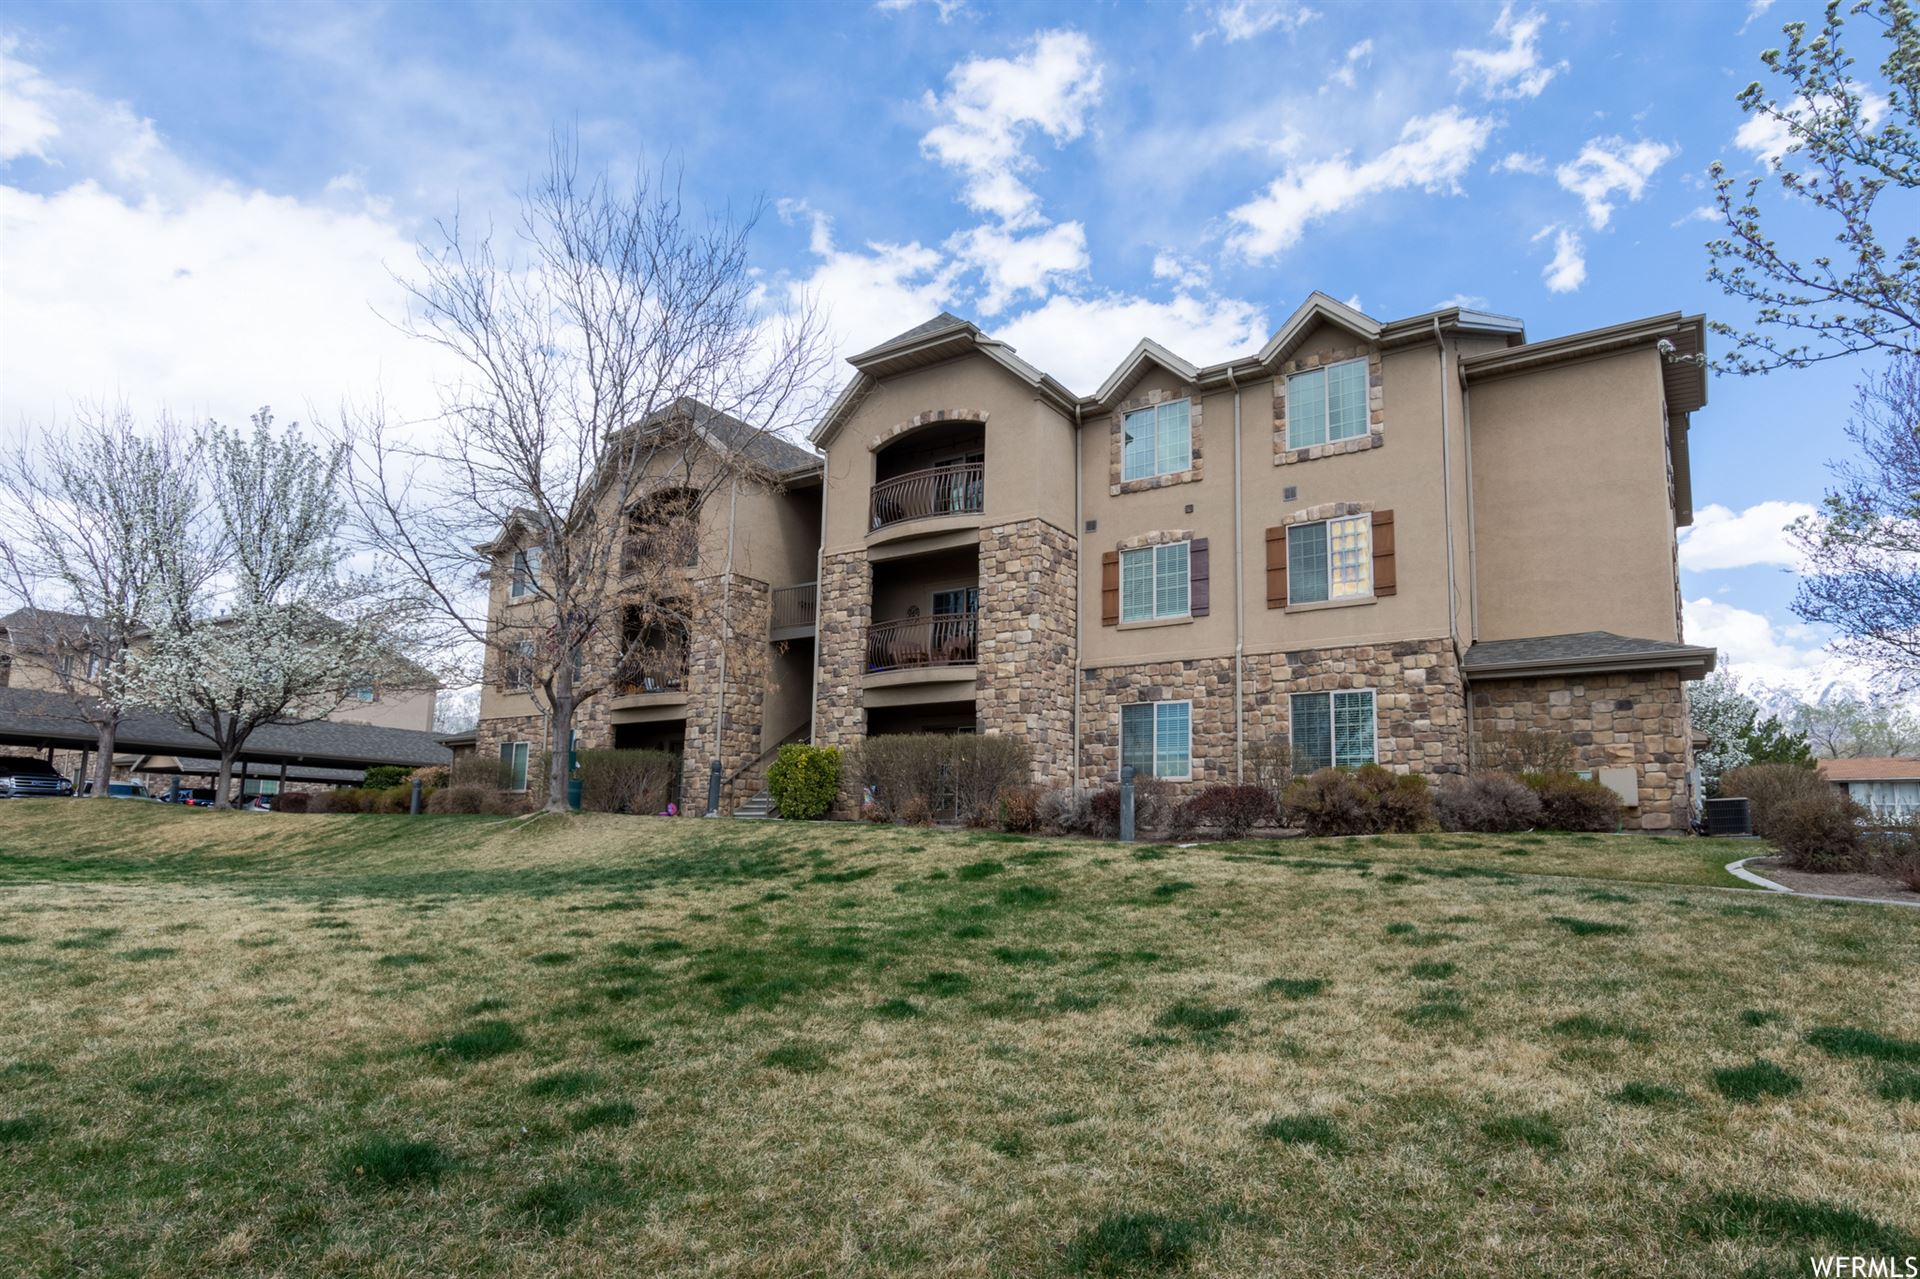 Photo of 181 N 1200 W #203, Orem, UT 84057 (MLS # 1734191)